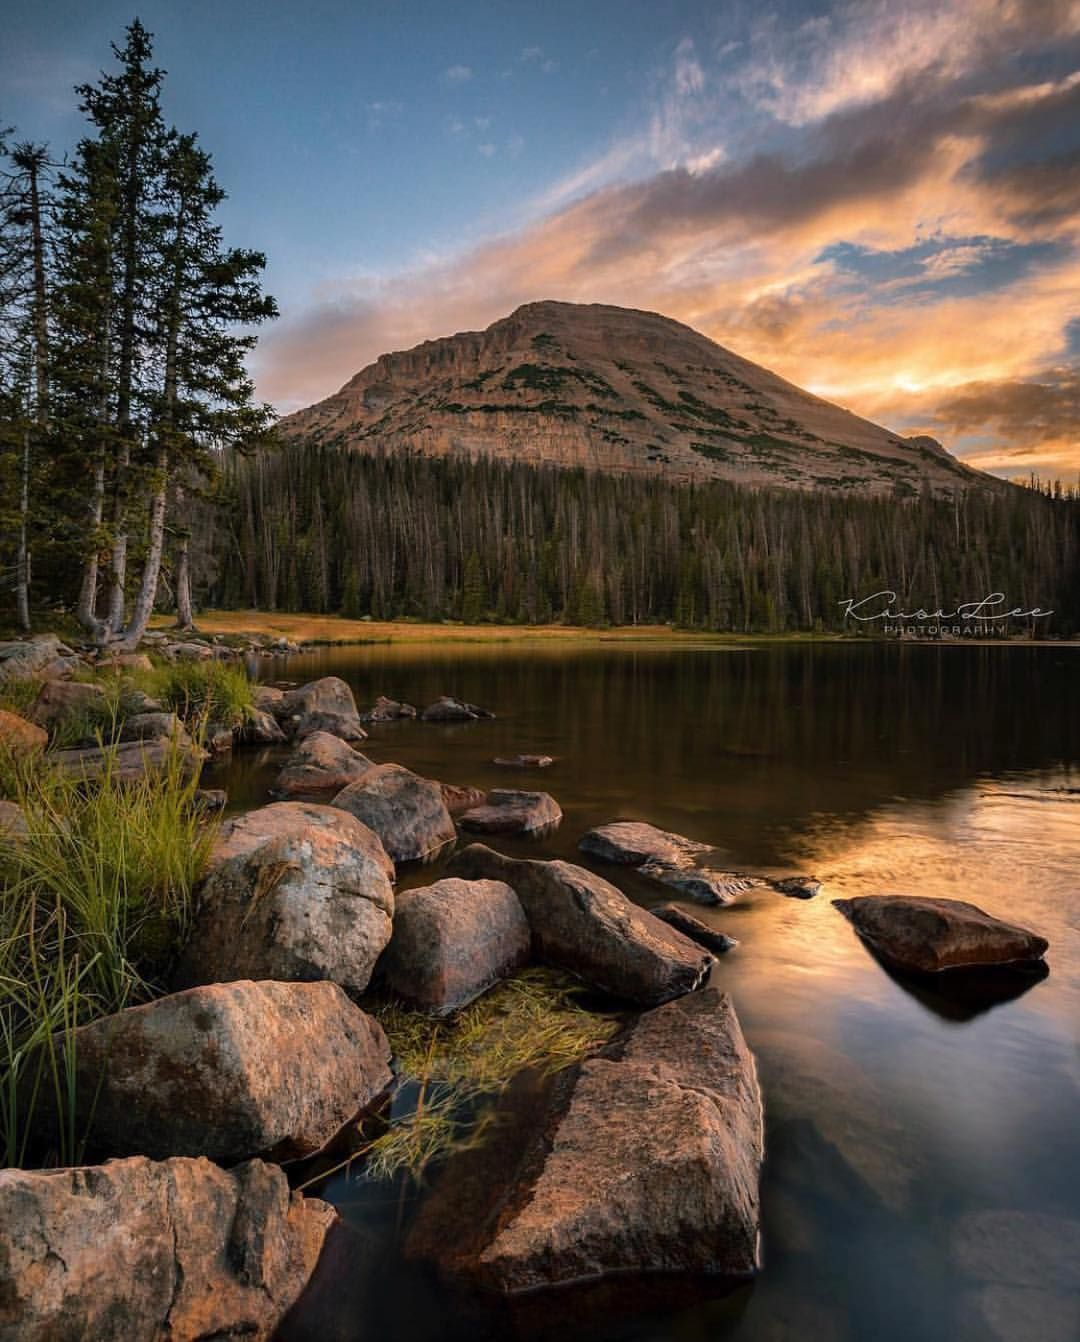 The Beautiful Mirror Lake In The Uinta Mountains In Utah Just A Short Drive From Salt Lake City N Utah Mountains Photography Lake Photography Scenic Drive